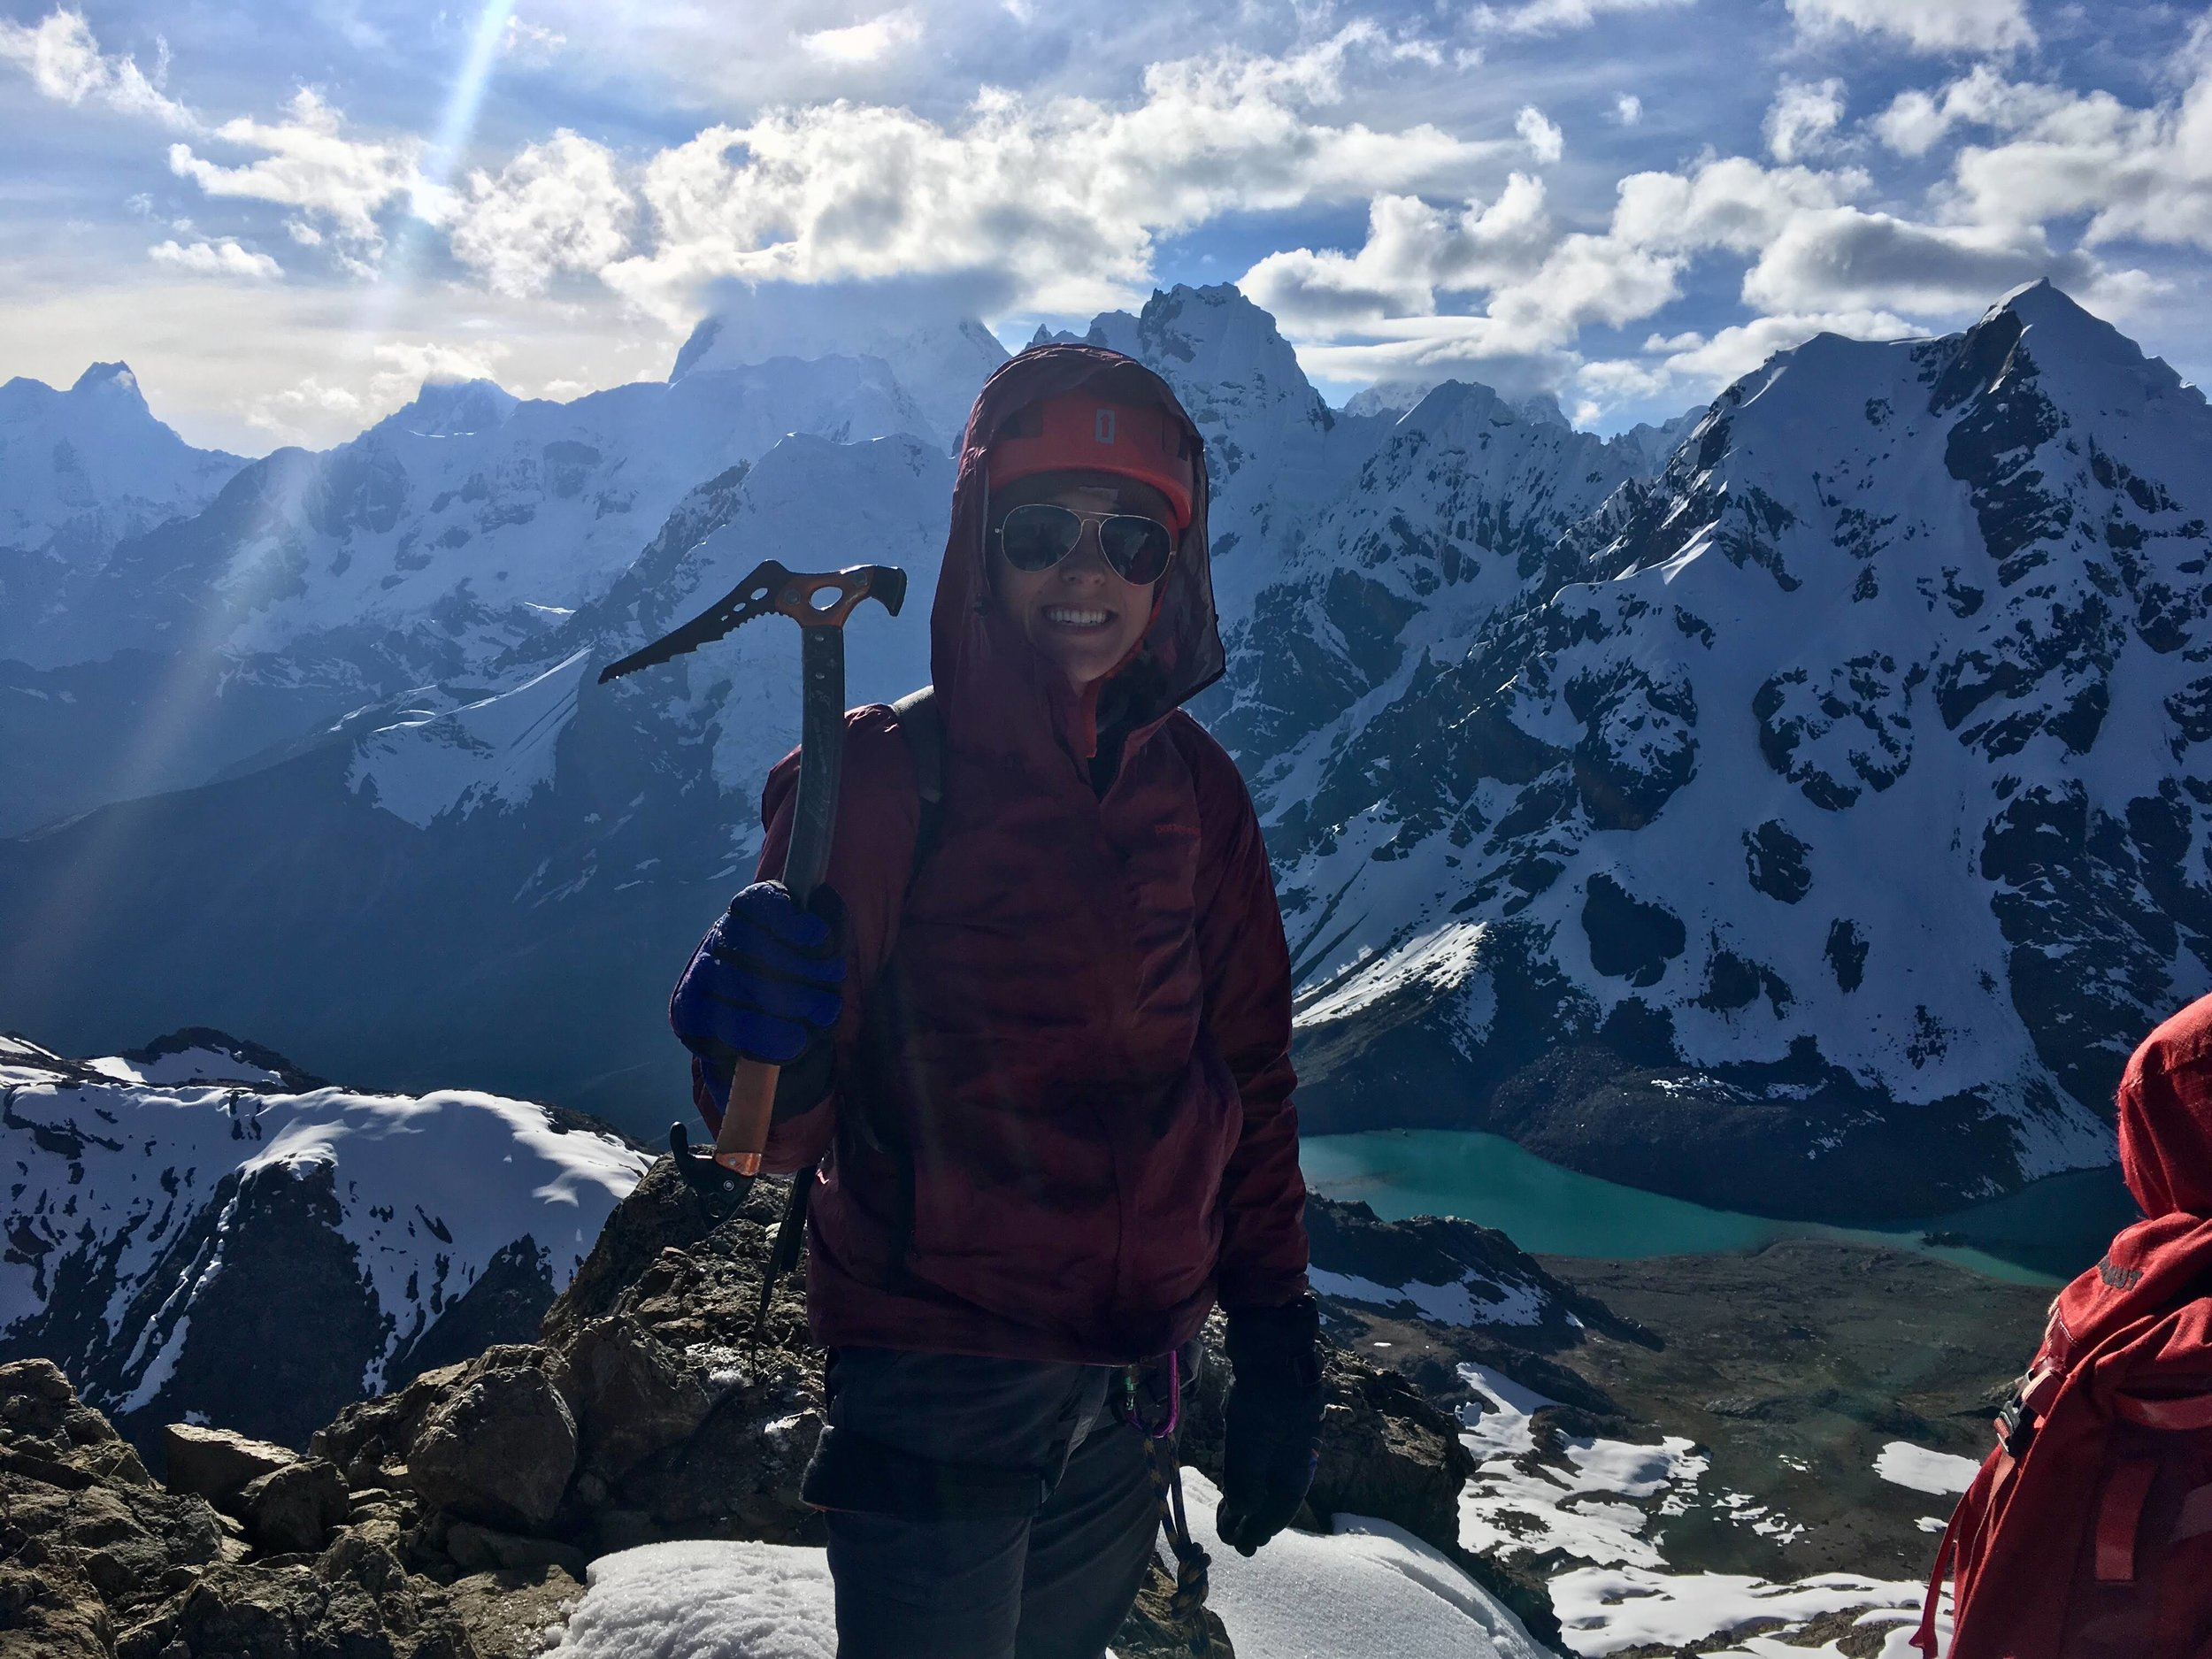 Taylor holding an ice pick and smiling atop the mountain